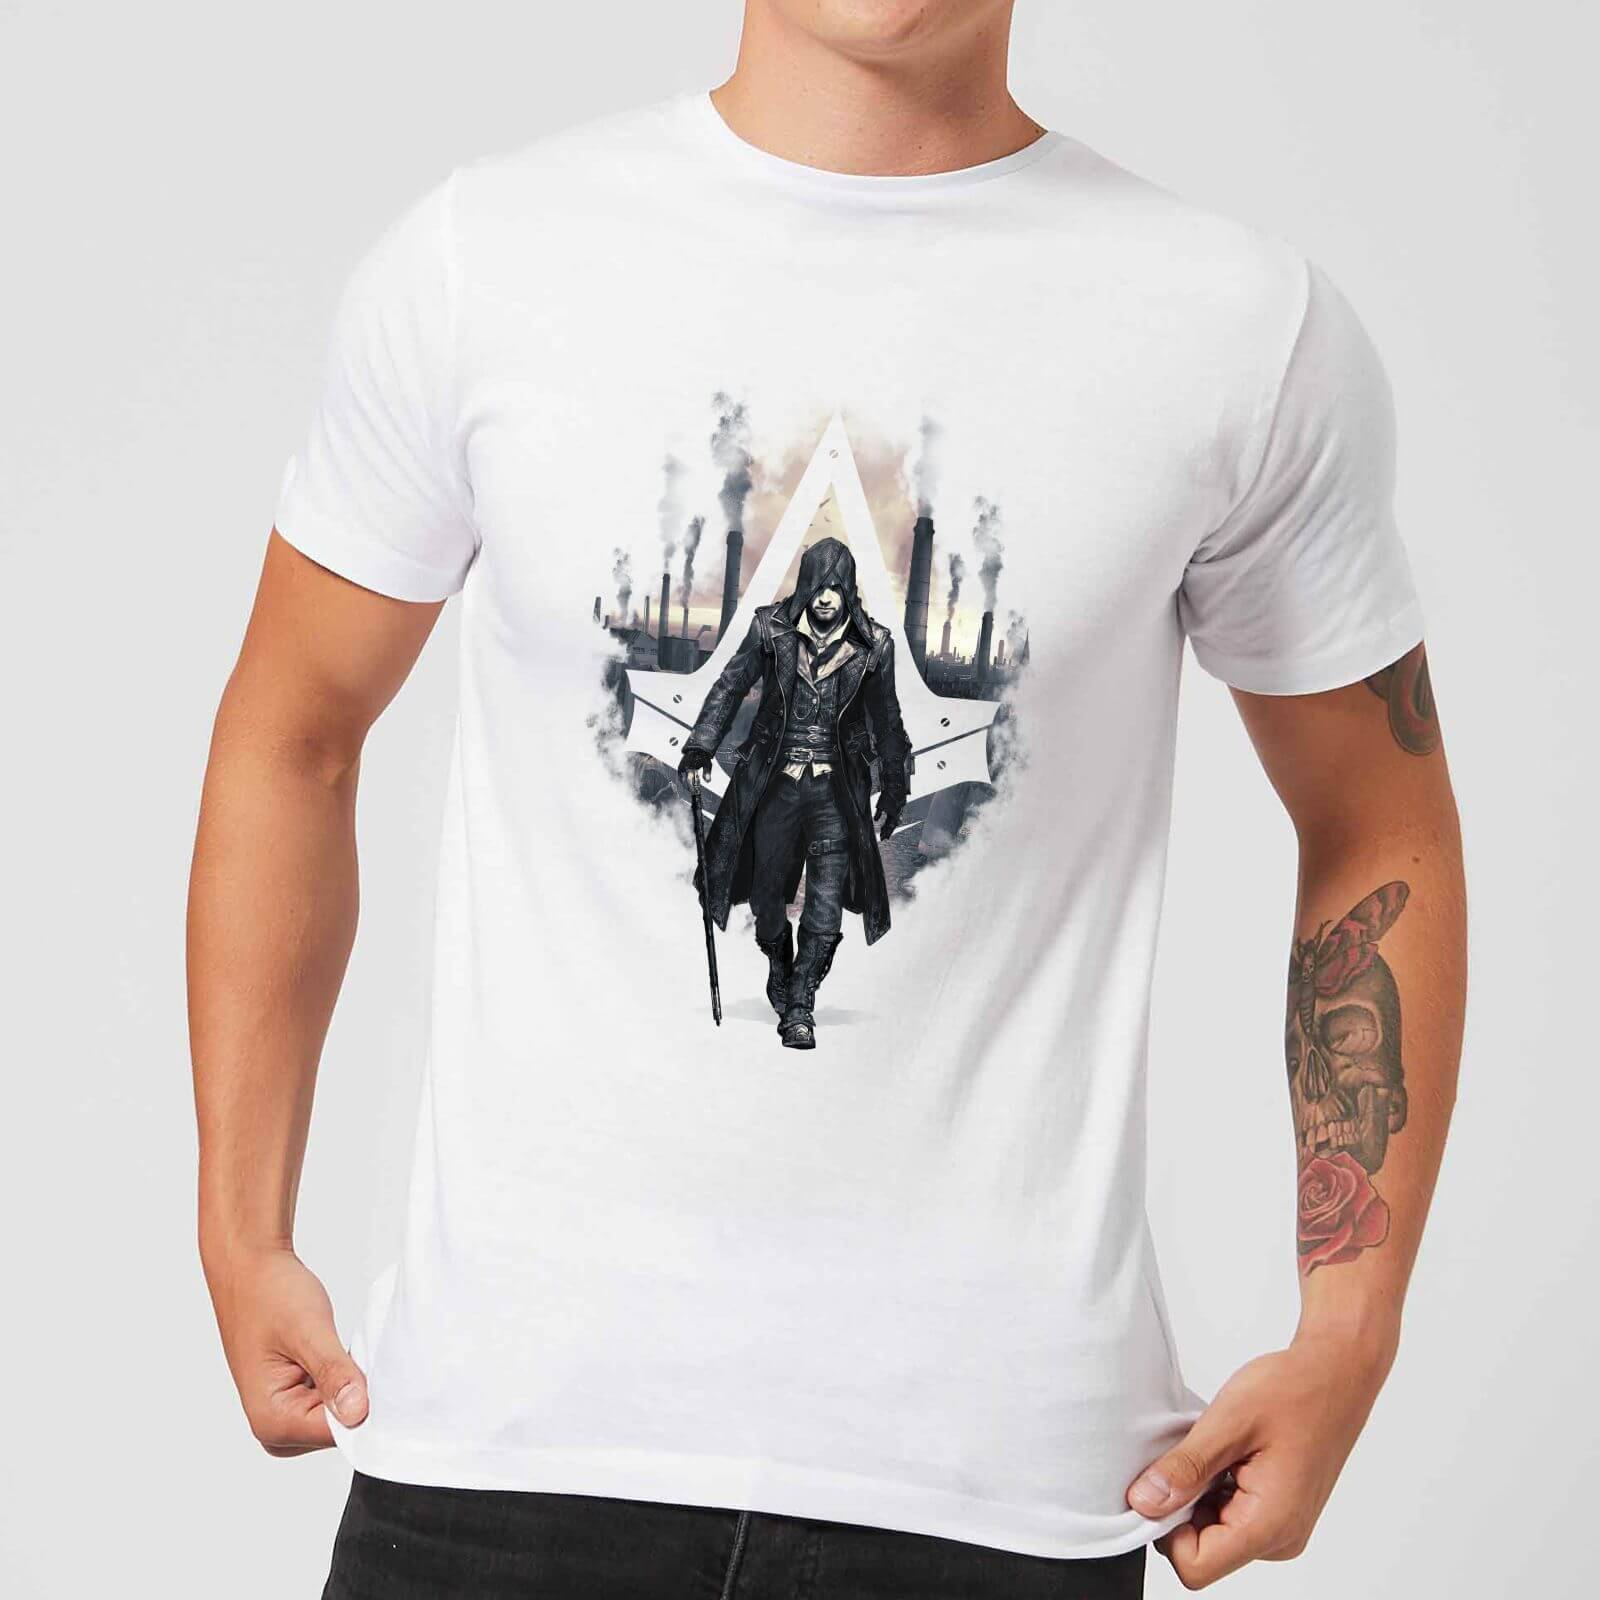 Assassin's Creed T-Shirt Homme London Skyline Assassin's Creed Syndicate - Blanc - L - Blanc